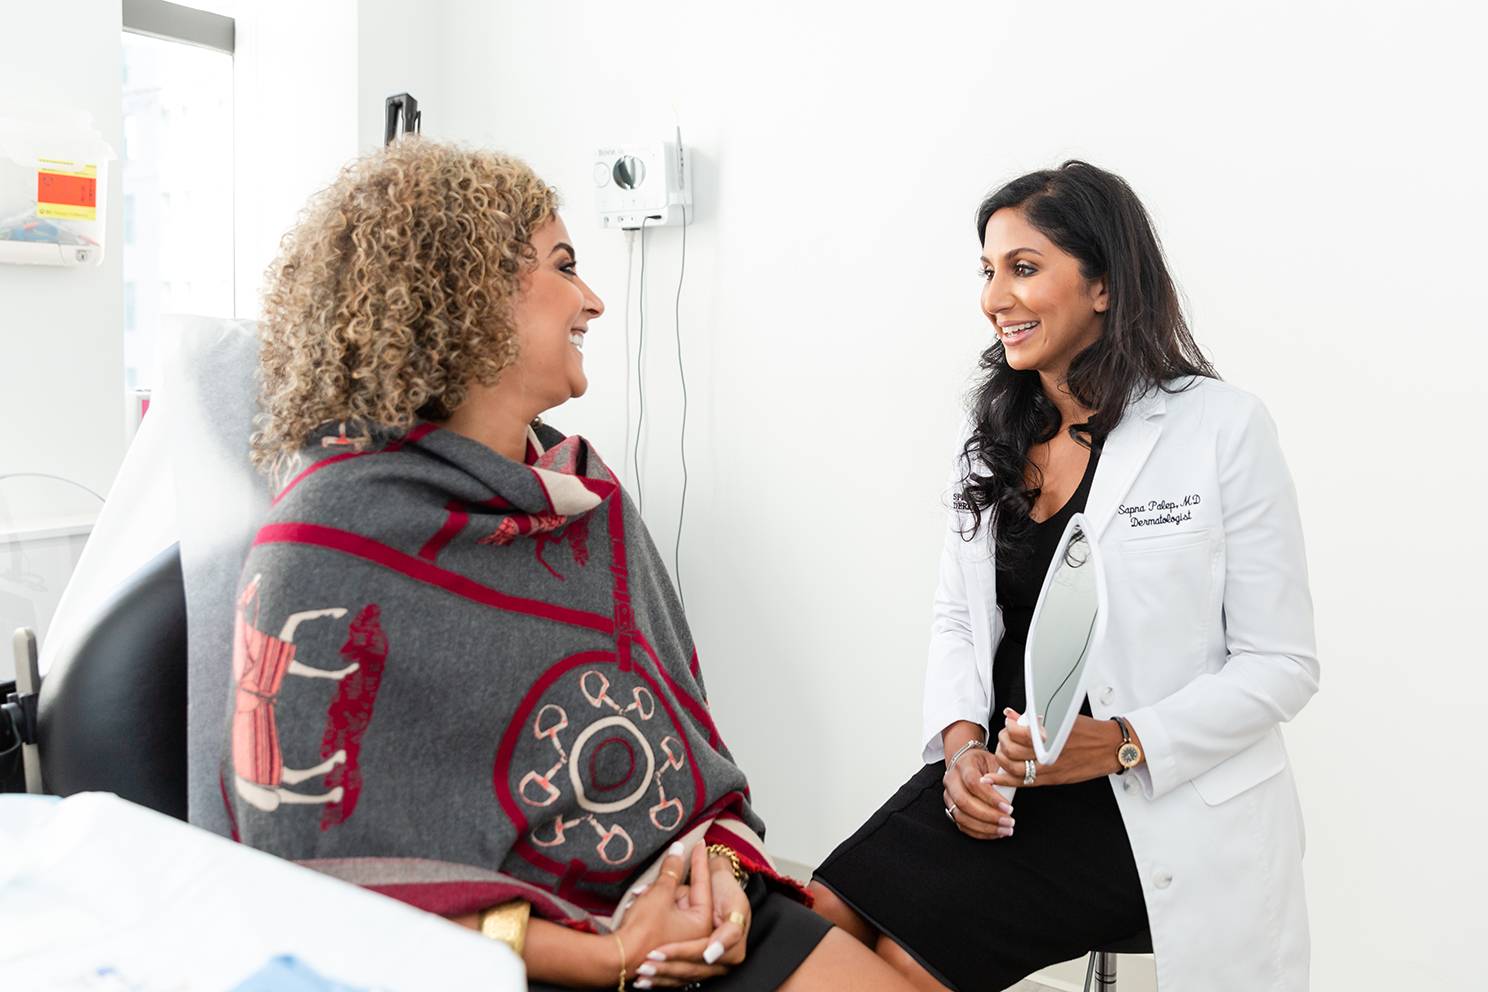 dermatologist consulting with a patient about Secret RF microneedling, a non-invasive wrinkle treatment in NYC